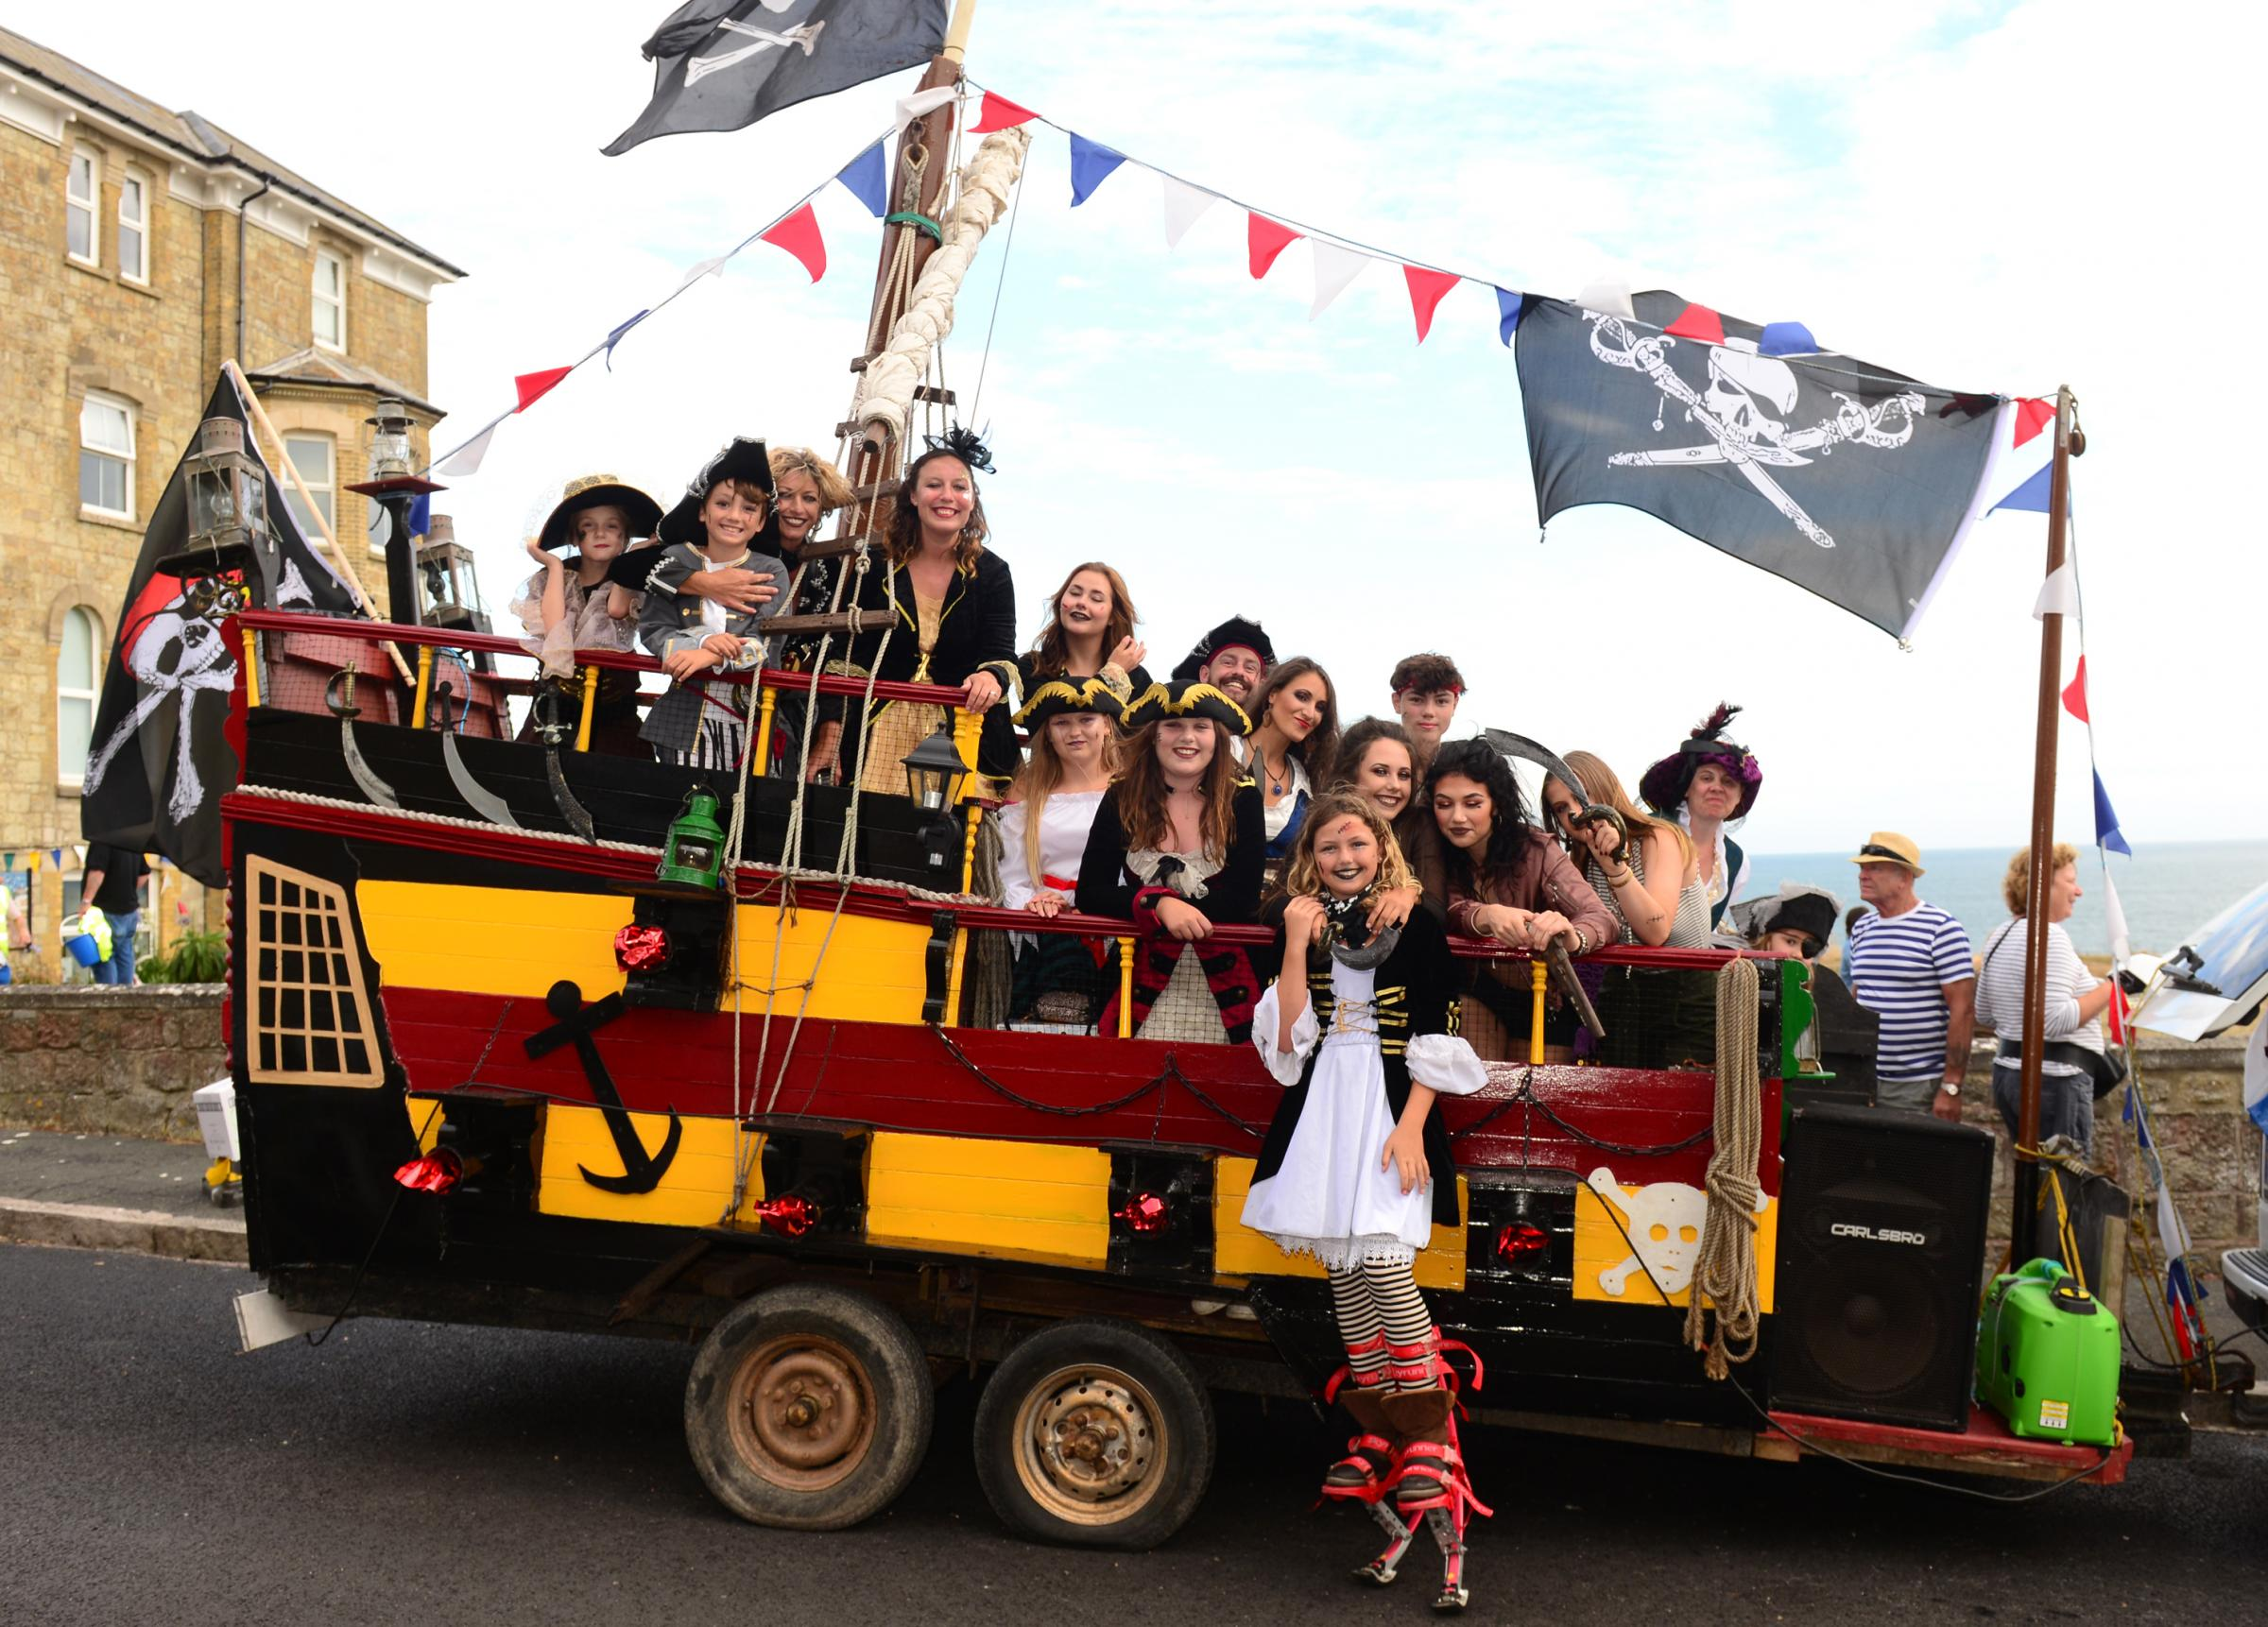 Pirates from The Spyglass Inn take part in Ventnor's carnival